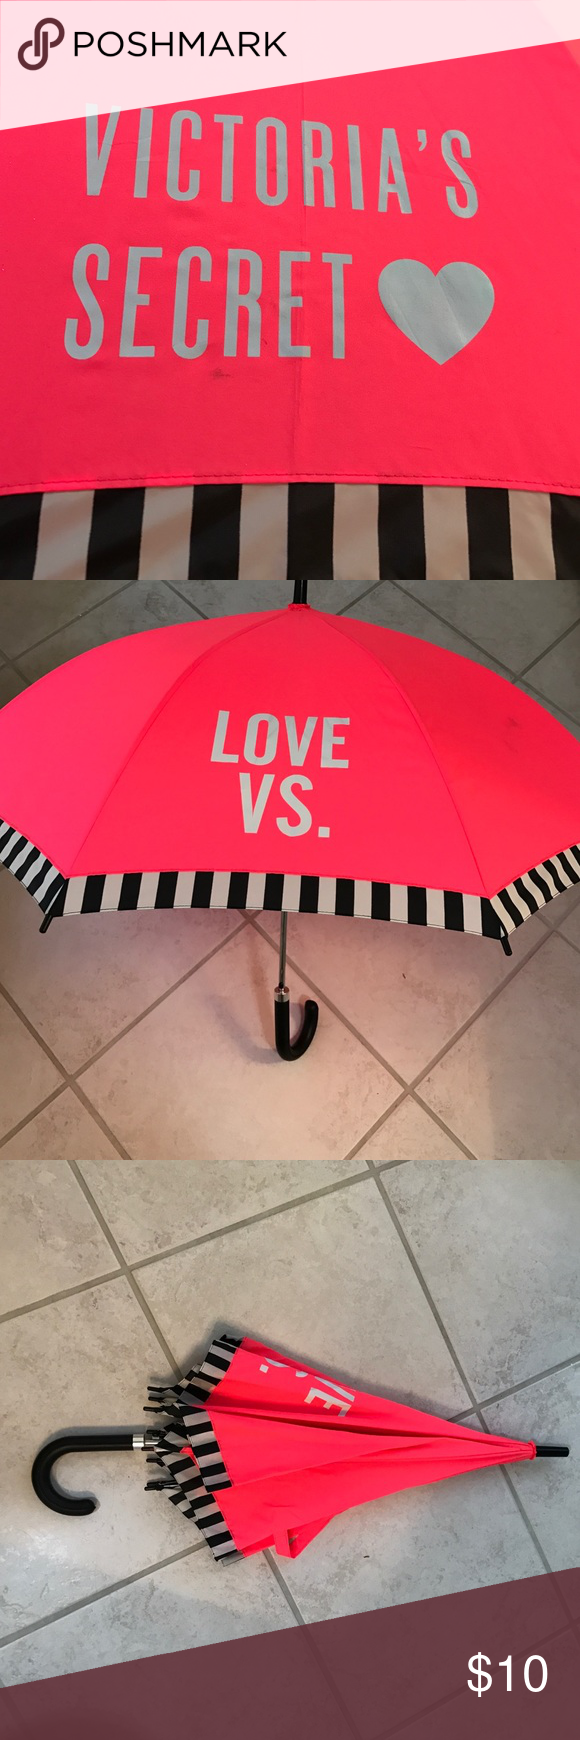 Victoria Secret Hot Pink Umbrella Super fun hot pink large umbrella. You will never be upset about getting caught in the rain again!! PINK Victoria's Secret Other #largeumbrella Victoria Secret Hot Pink Umbrella Super fun hot pink large umbrella. You will never be upset about getting caught in the rain again!! PINK Victoria's Secret Other #largeumbrella Victoria Secret Hot Pink Umbrella Super fun hot pink large umbrella. You will never be upset about getting caught in the rain again!! PINK Victo #largeumbrella